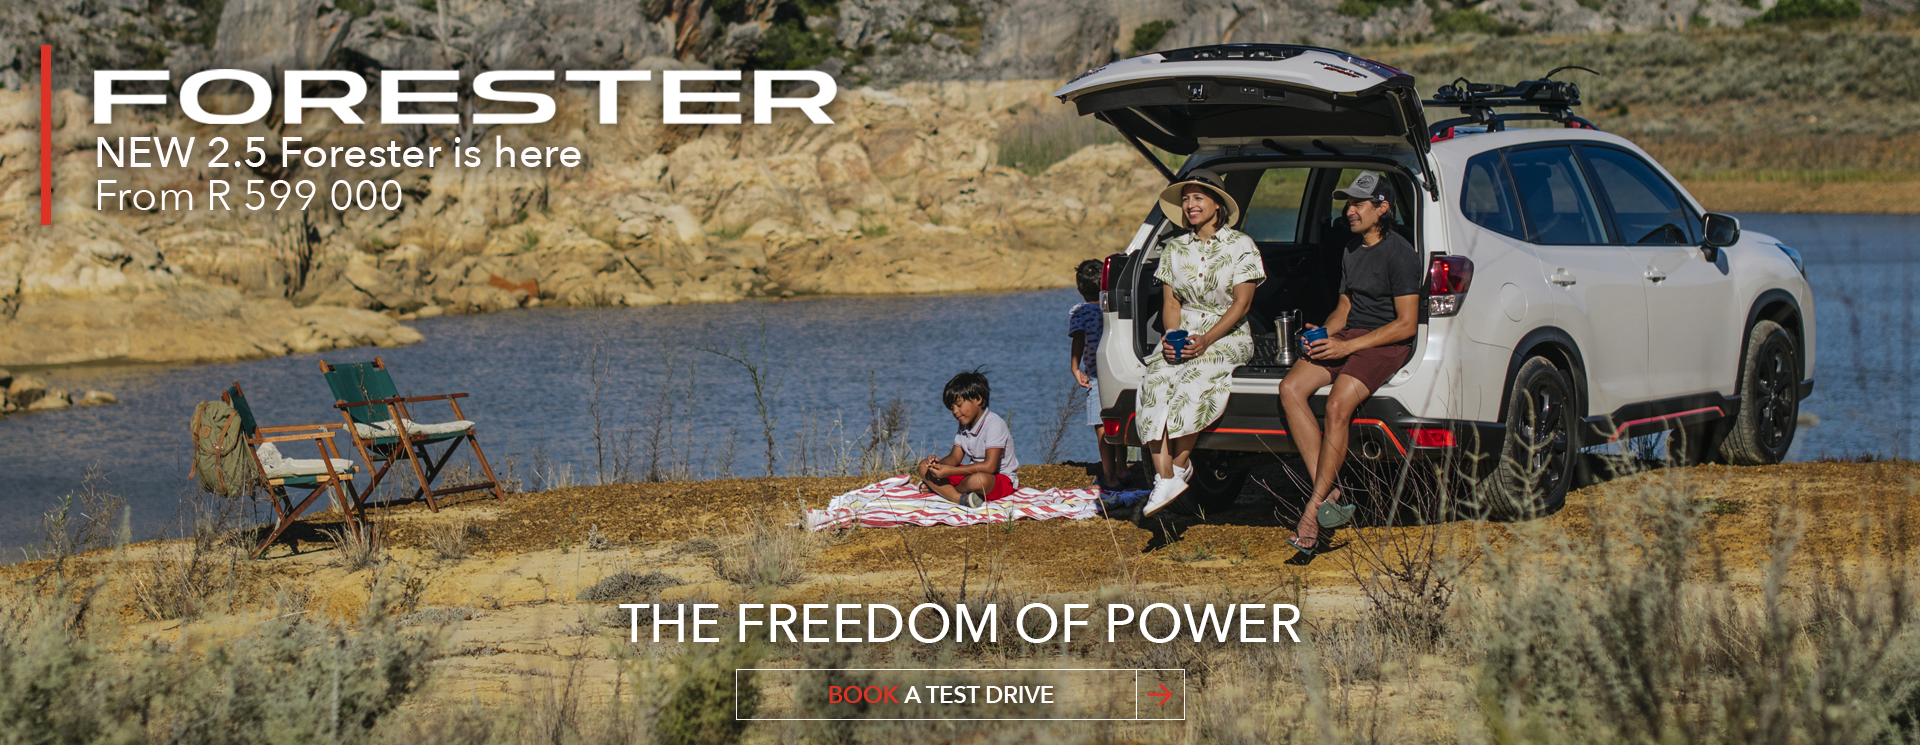 New Forester 2.5 Forester Sport Subaru South Africa